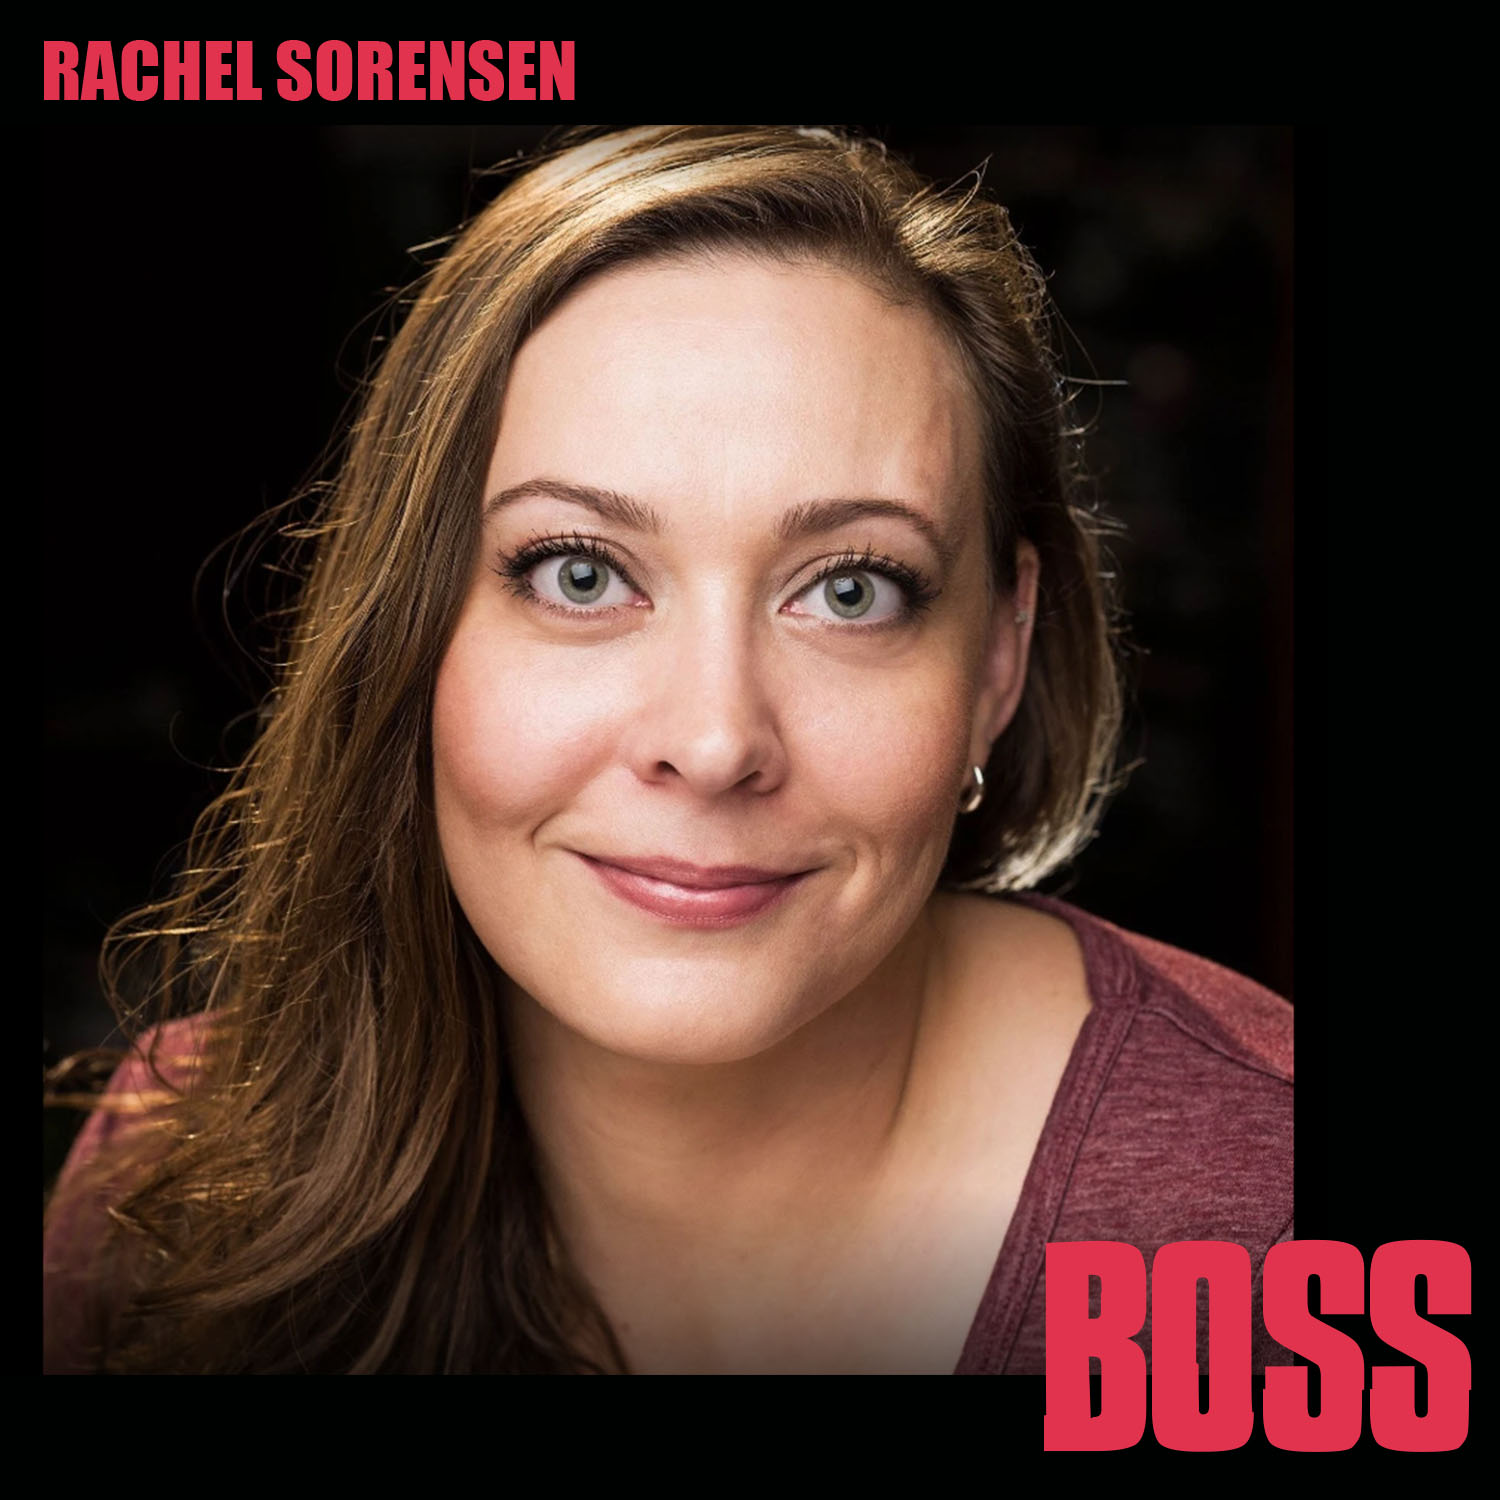 Rachel Sorensen stars as VIXEN - Rachel moved to Atlanta in 2013 from her home in South Dakota to pursue her lifelong love of storytelling through acting. She began working as an extra and stand-in in 2014. Rachel has since had roles in a variety of film and television productions.imdb - Rachel Sorensen